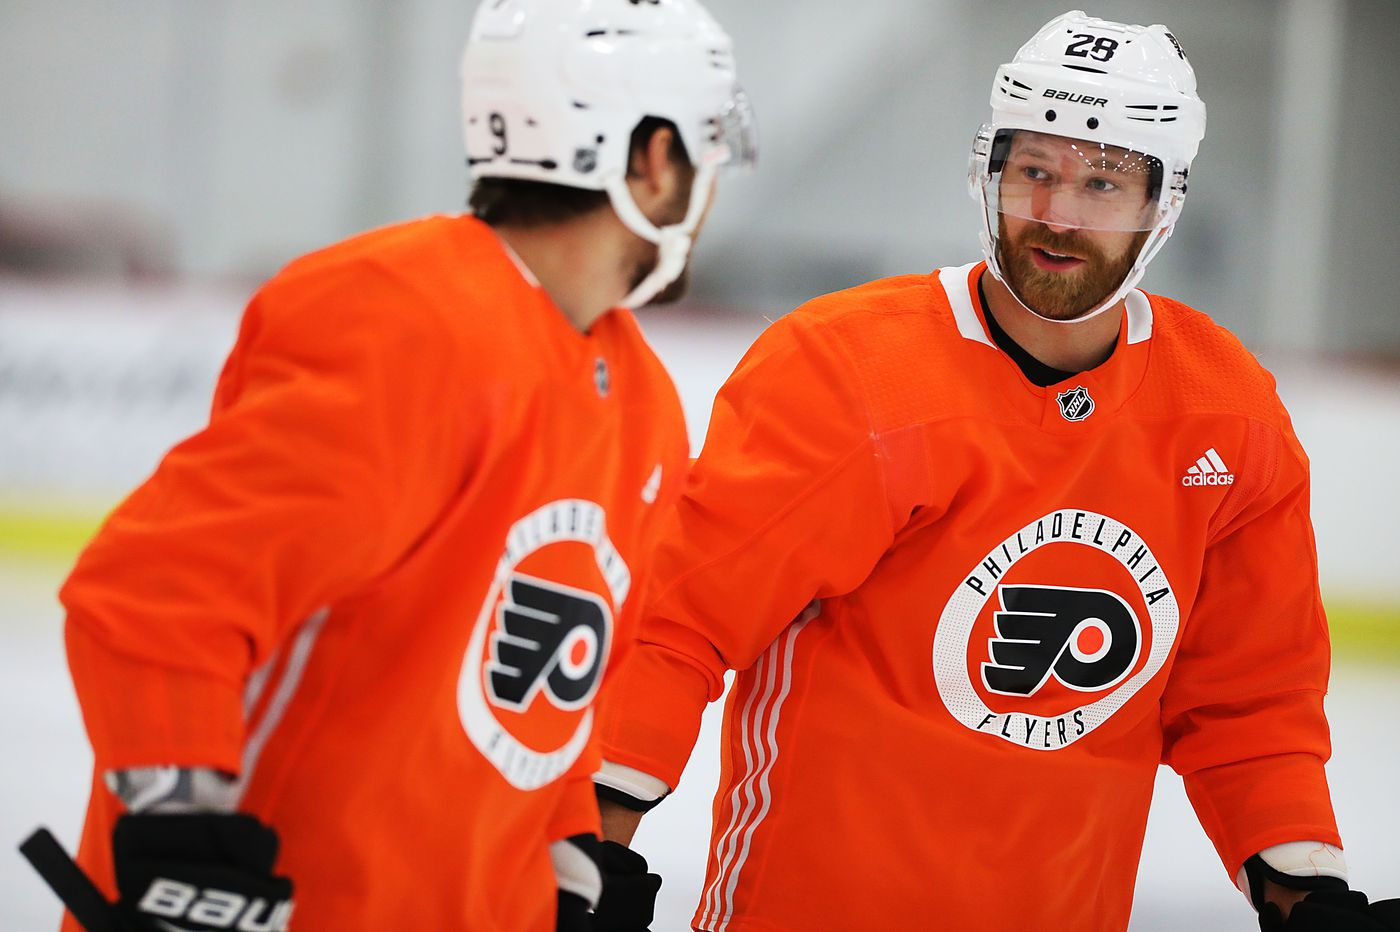 For new dad Claude Giroux, more motivation to extend his brilliant Flyers career | Sam Carchidi